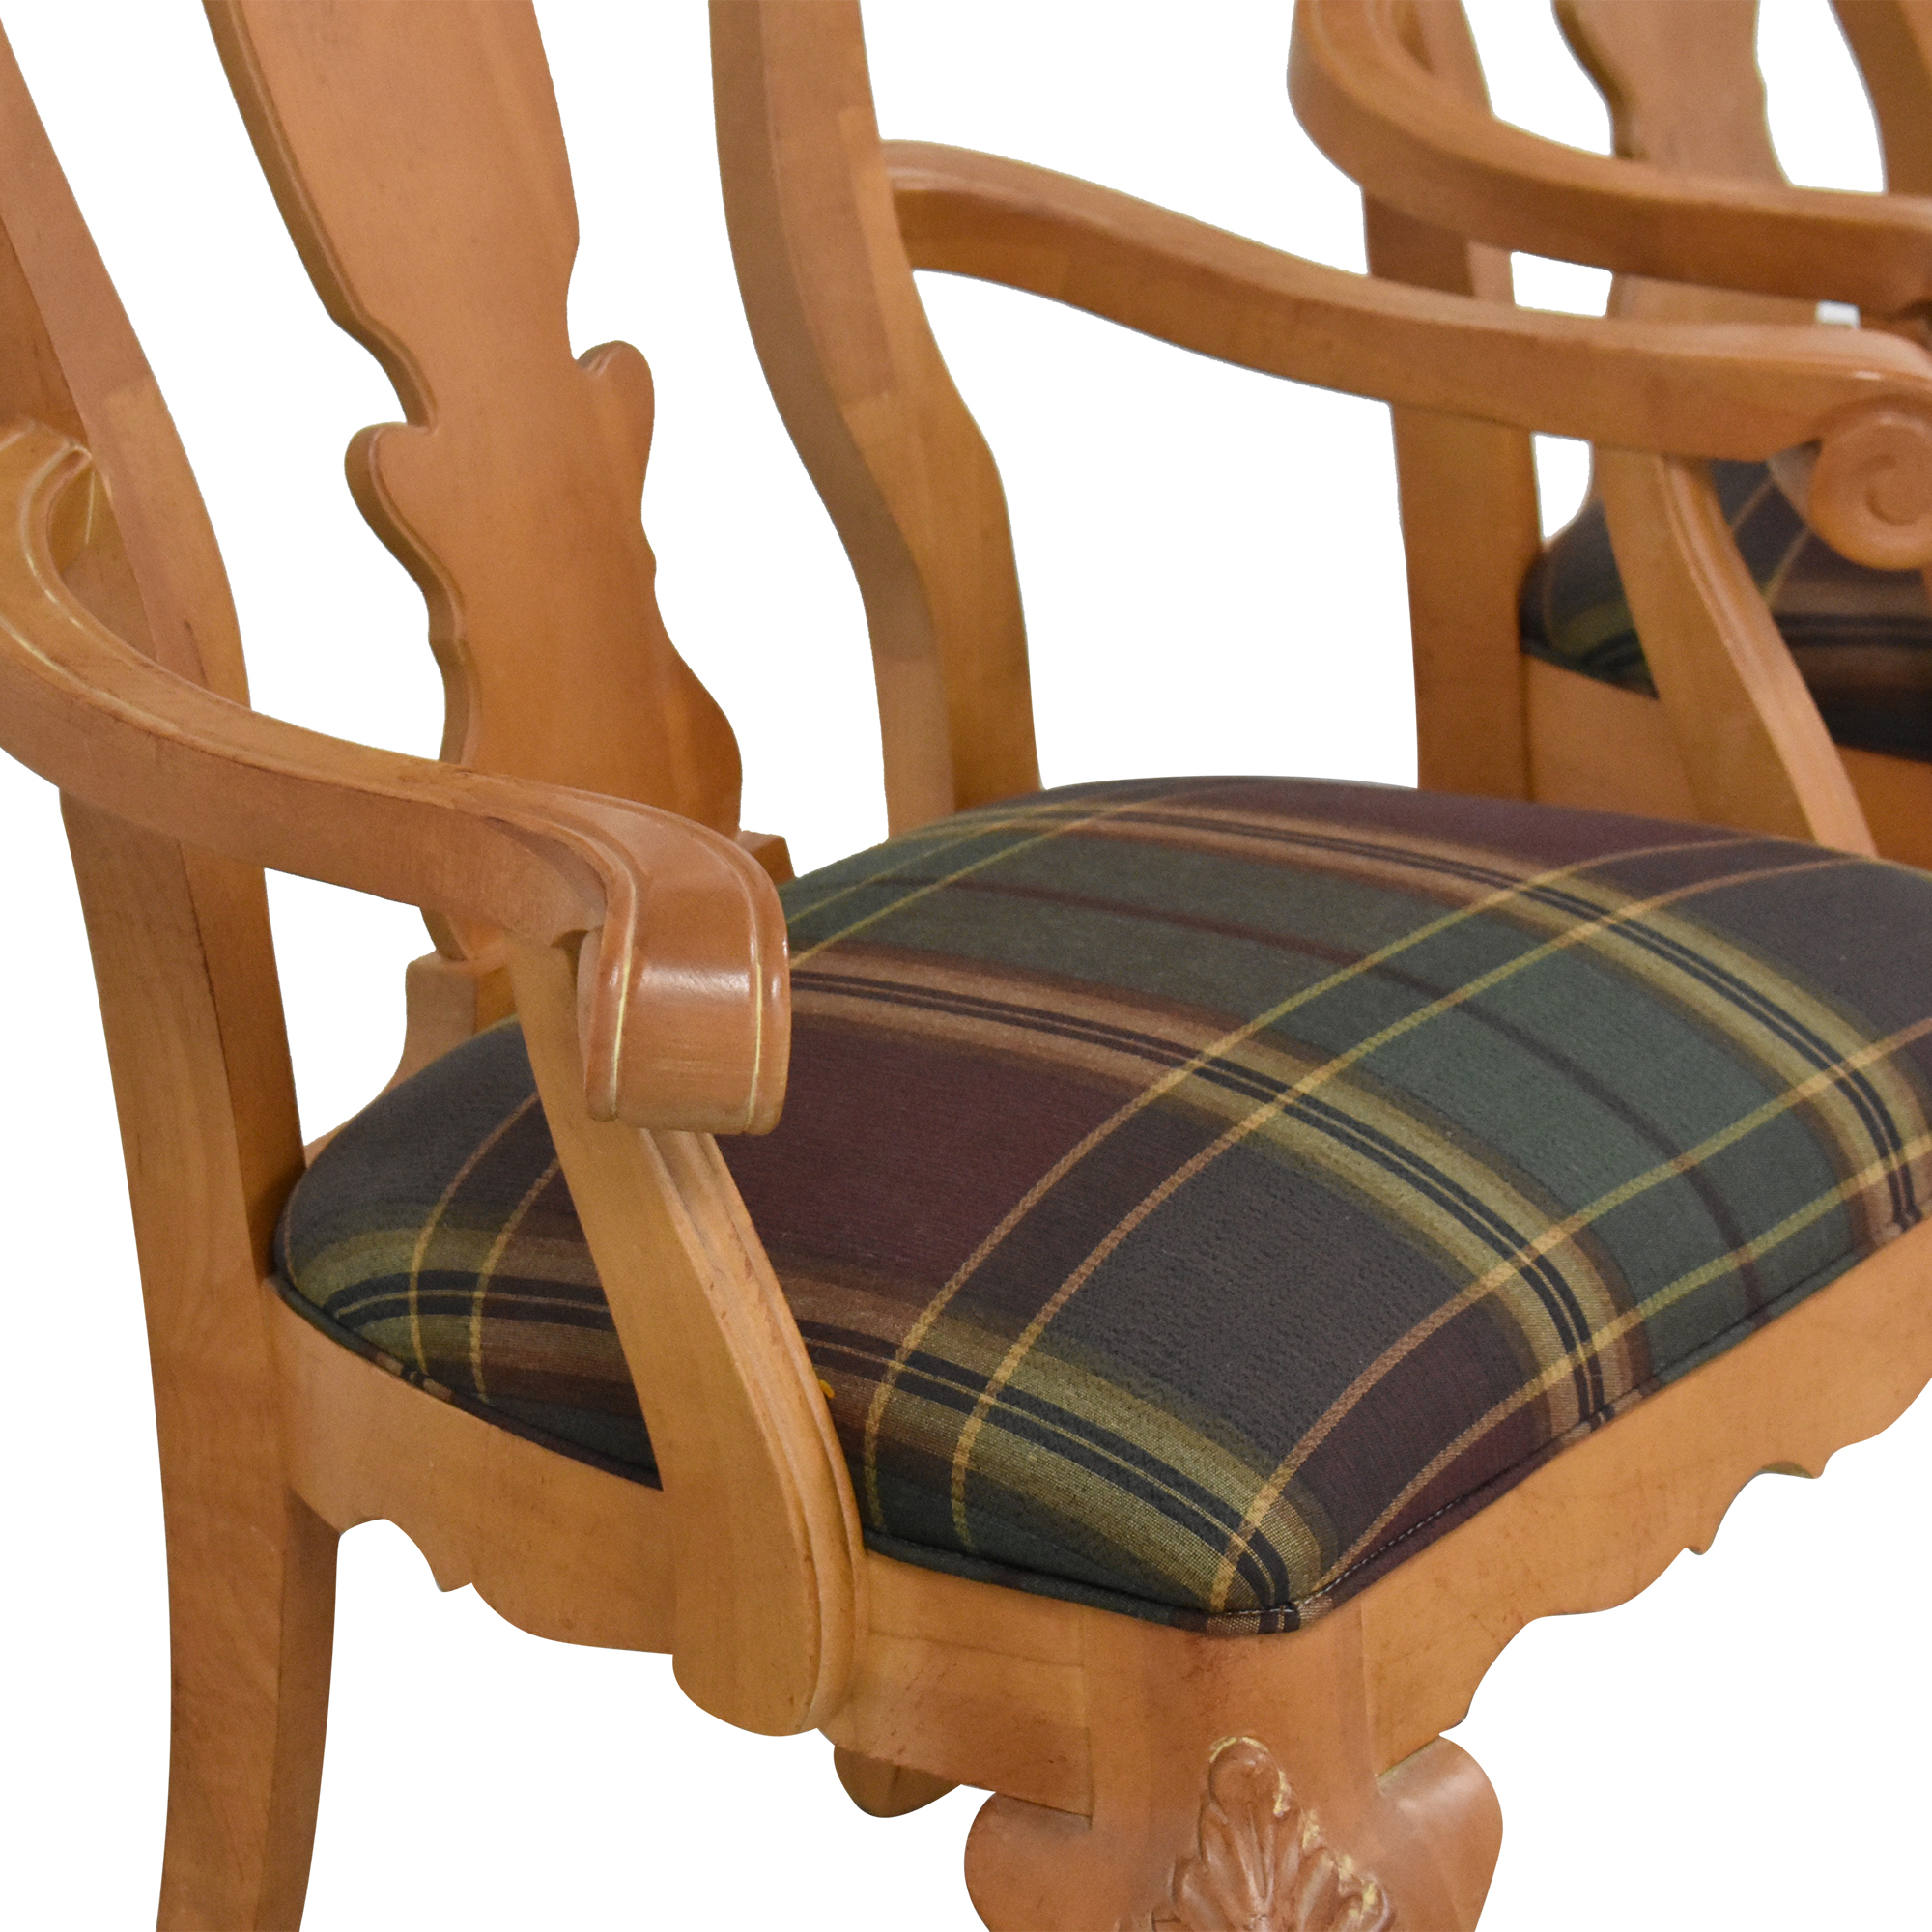 Thomasville Thomasville Plaid Upholstered Dining Arm Chairs  on sale